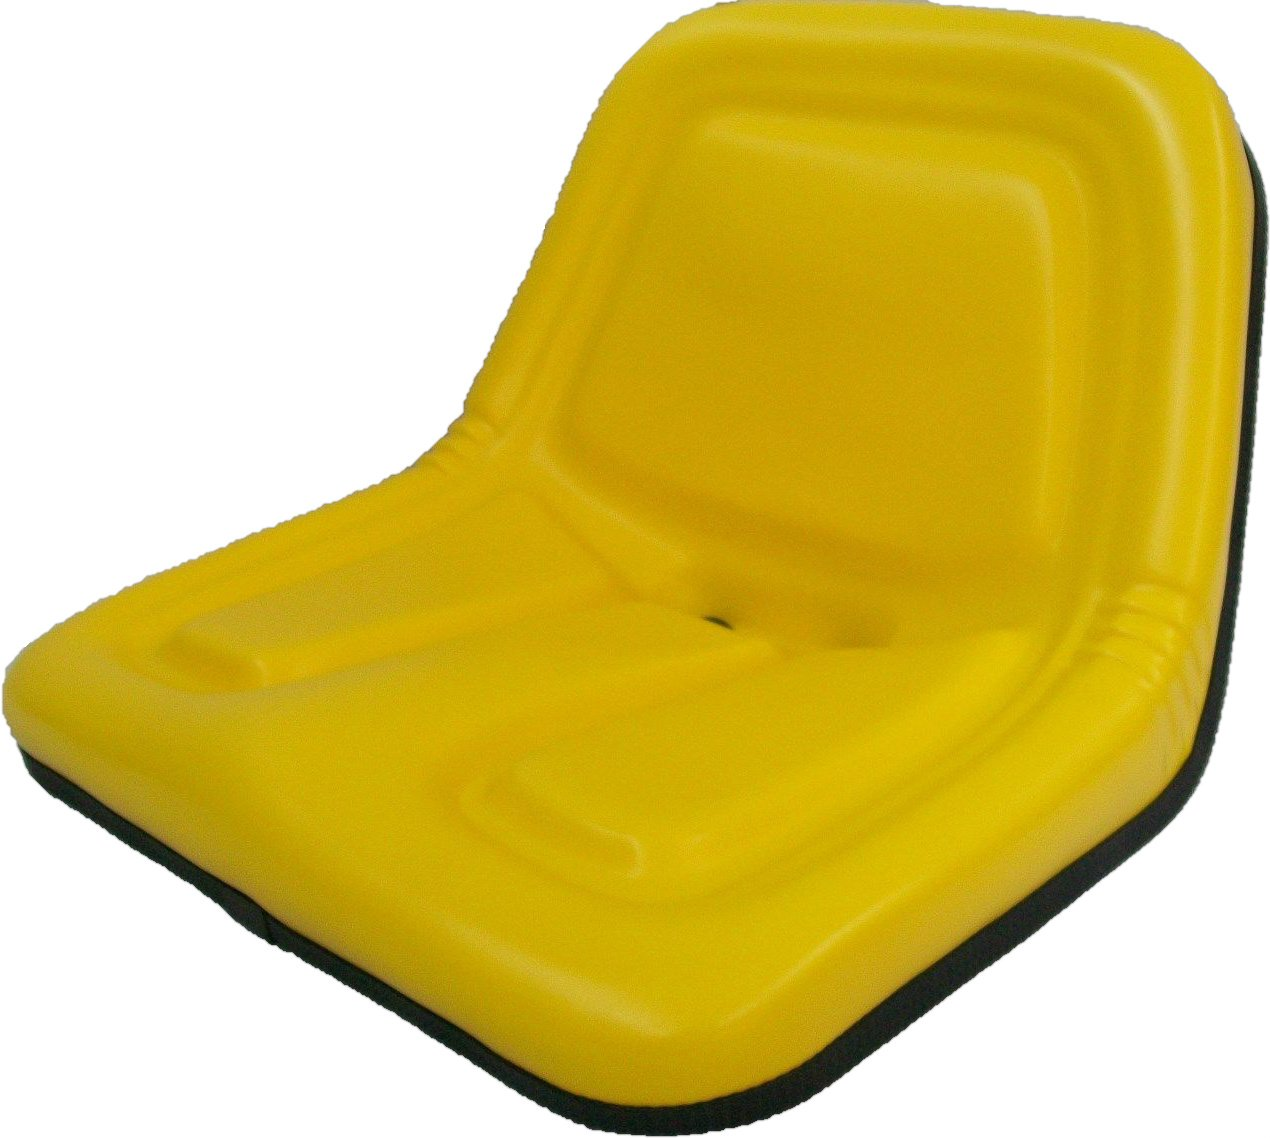 Replacement Pan Seat For John Deere 316,318,322,330,332,420,430 #BZ by Aftermarket